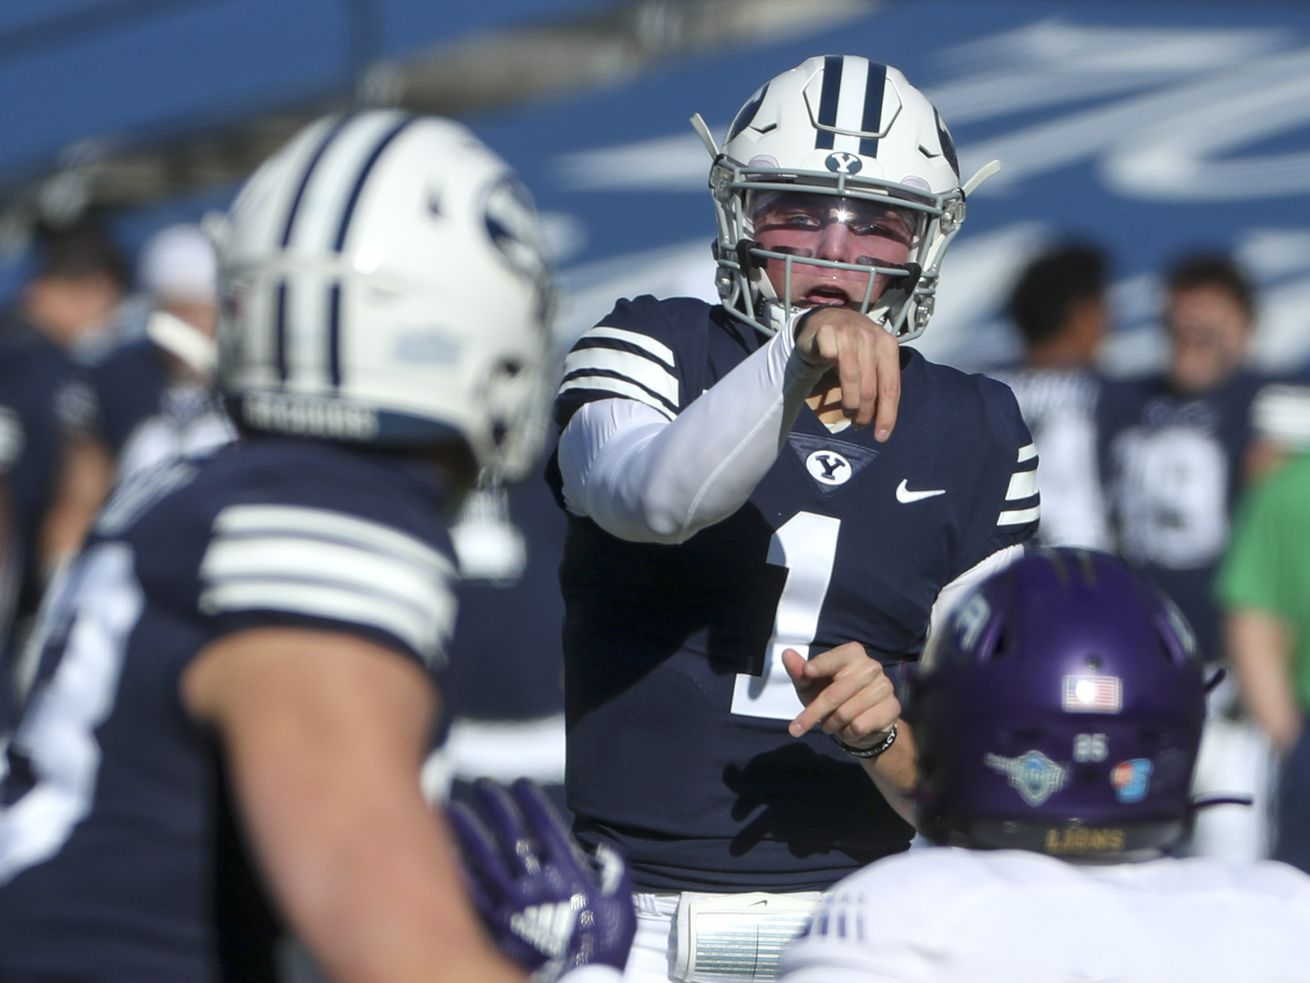 BYU Cougars ranked No. 13 in latest College Football Playoff rankings